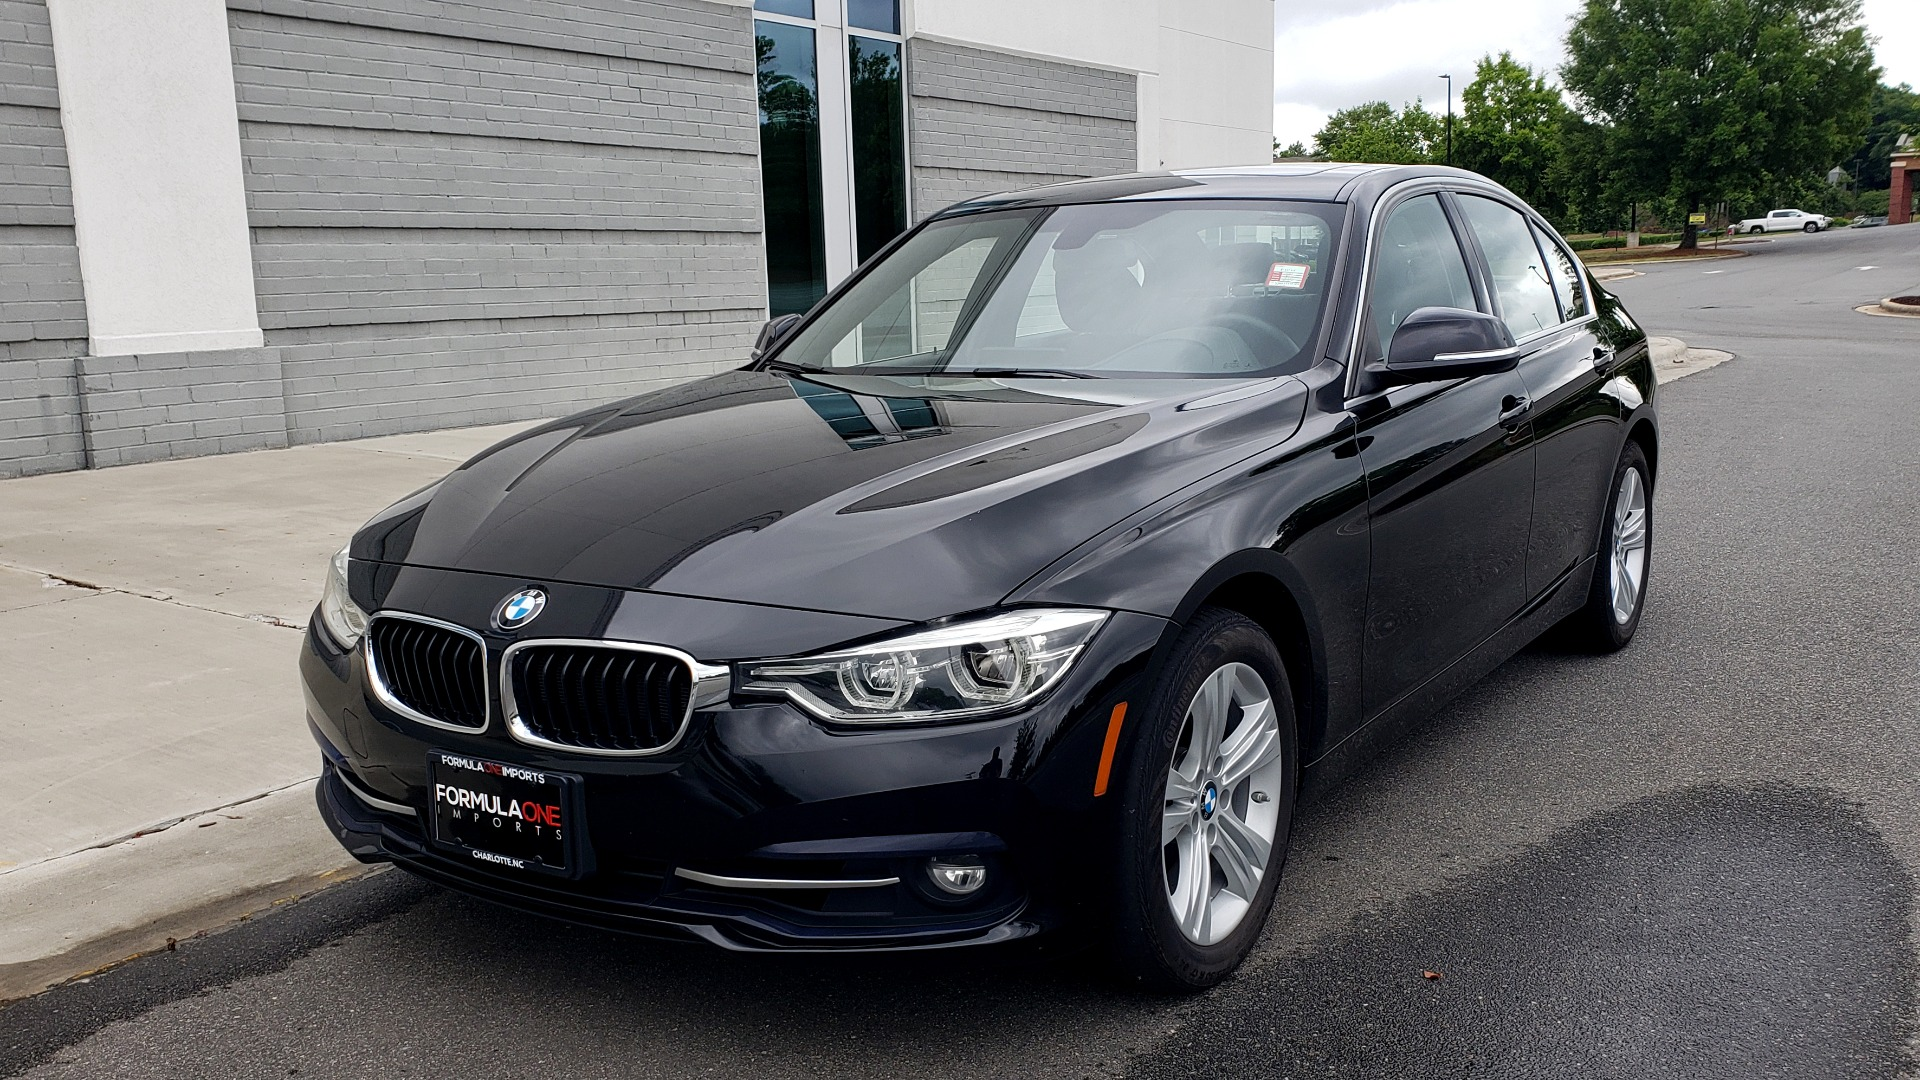 Used 2018 BMW 3 SERIES 330IXDRIVE / CONV PKG / NAV / SUNROOF / HTD STS / REARVIEW for sale $26,552 at Formula Imports in Charlotte NC 28227 3